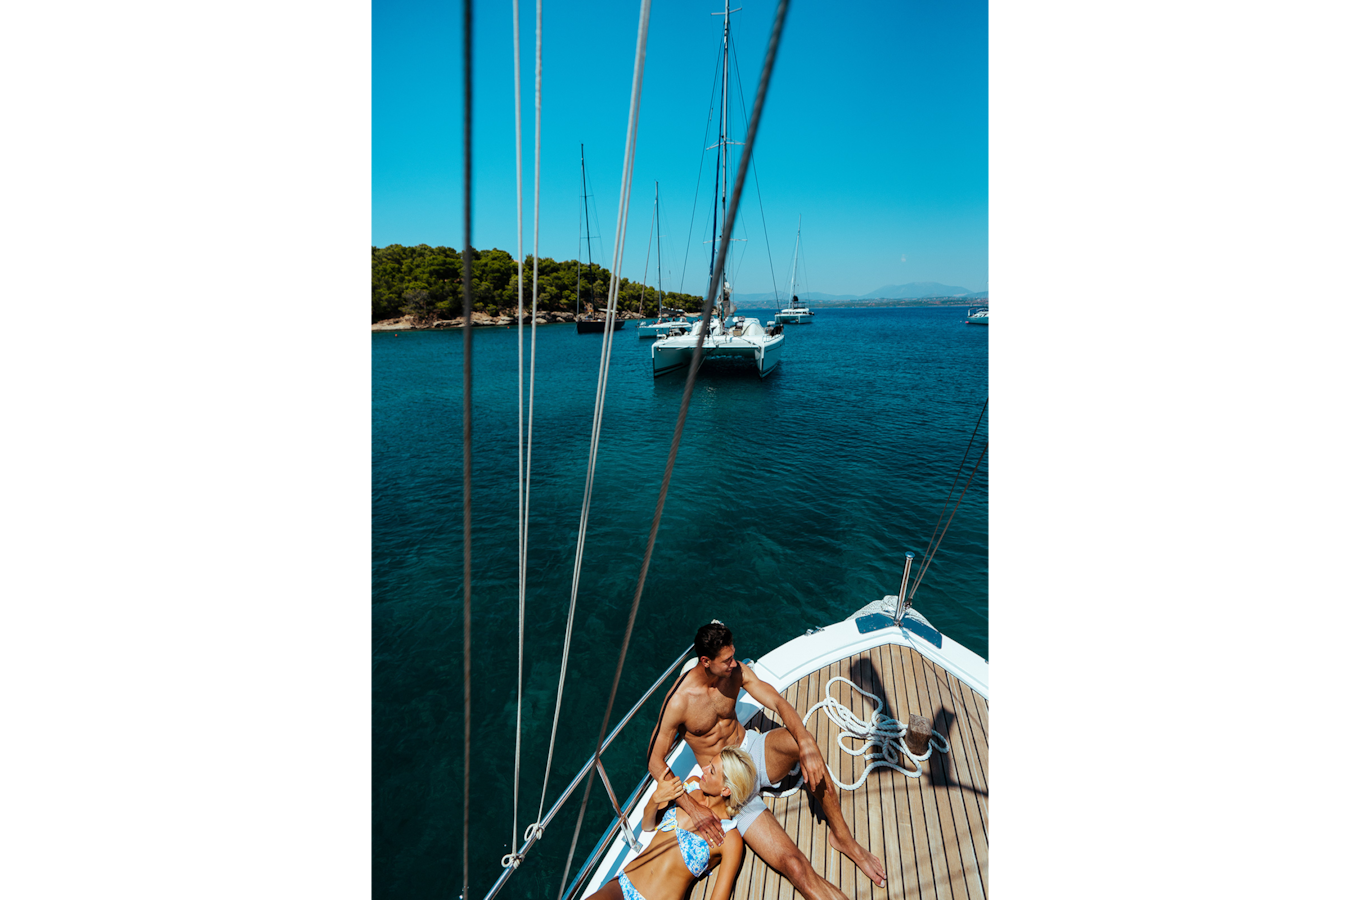 George-Kasionis-&-Stam-Tsopanakis-sony-alpha-7III-couple-relaxing-on-boat